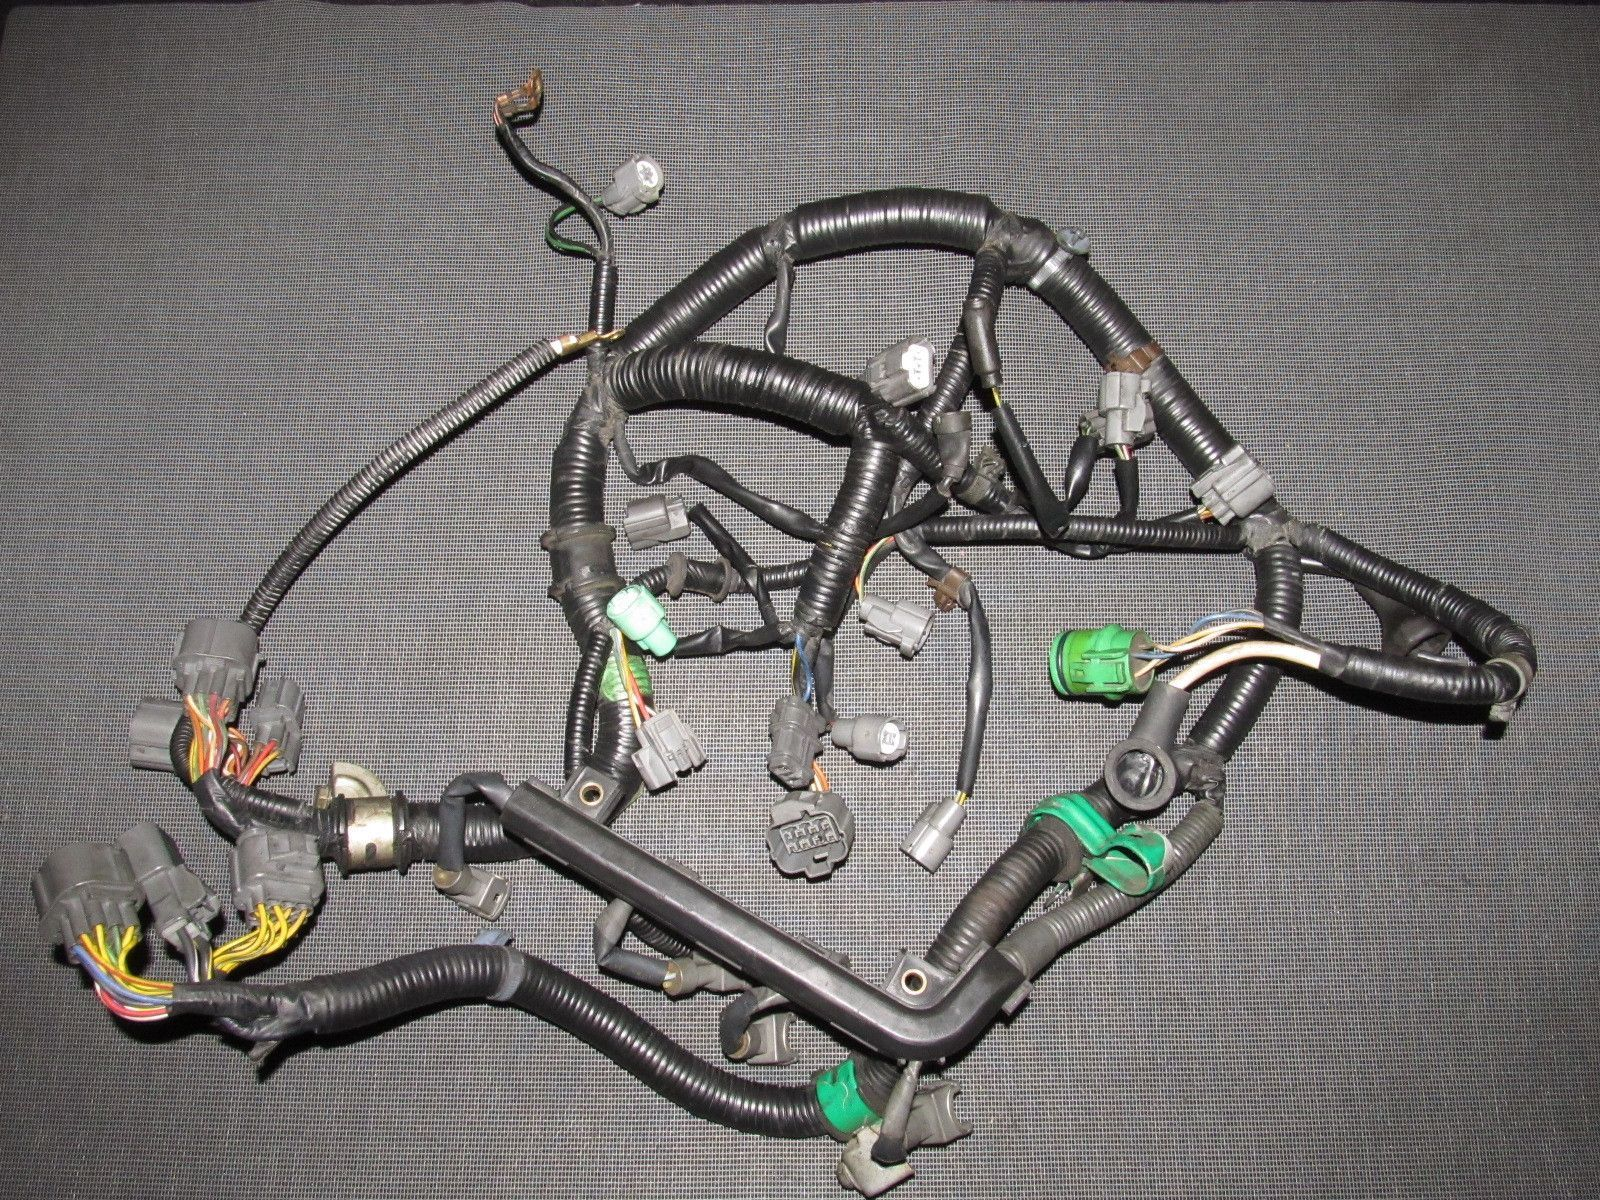 e13ed0b9adc09ceb92223cce2cd7bac5 93 94 95 honda del sol d16z6 auto transmission engine wiring d16z6 vtec wiring harness at eliteediting.co